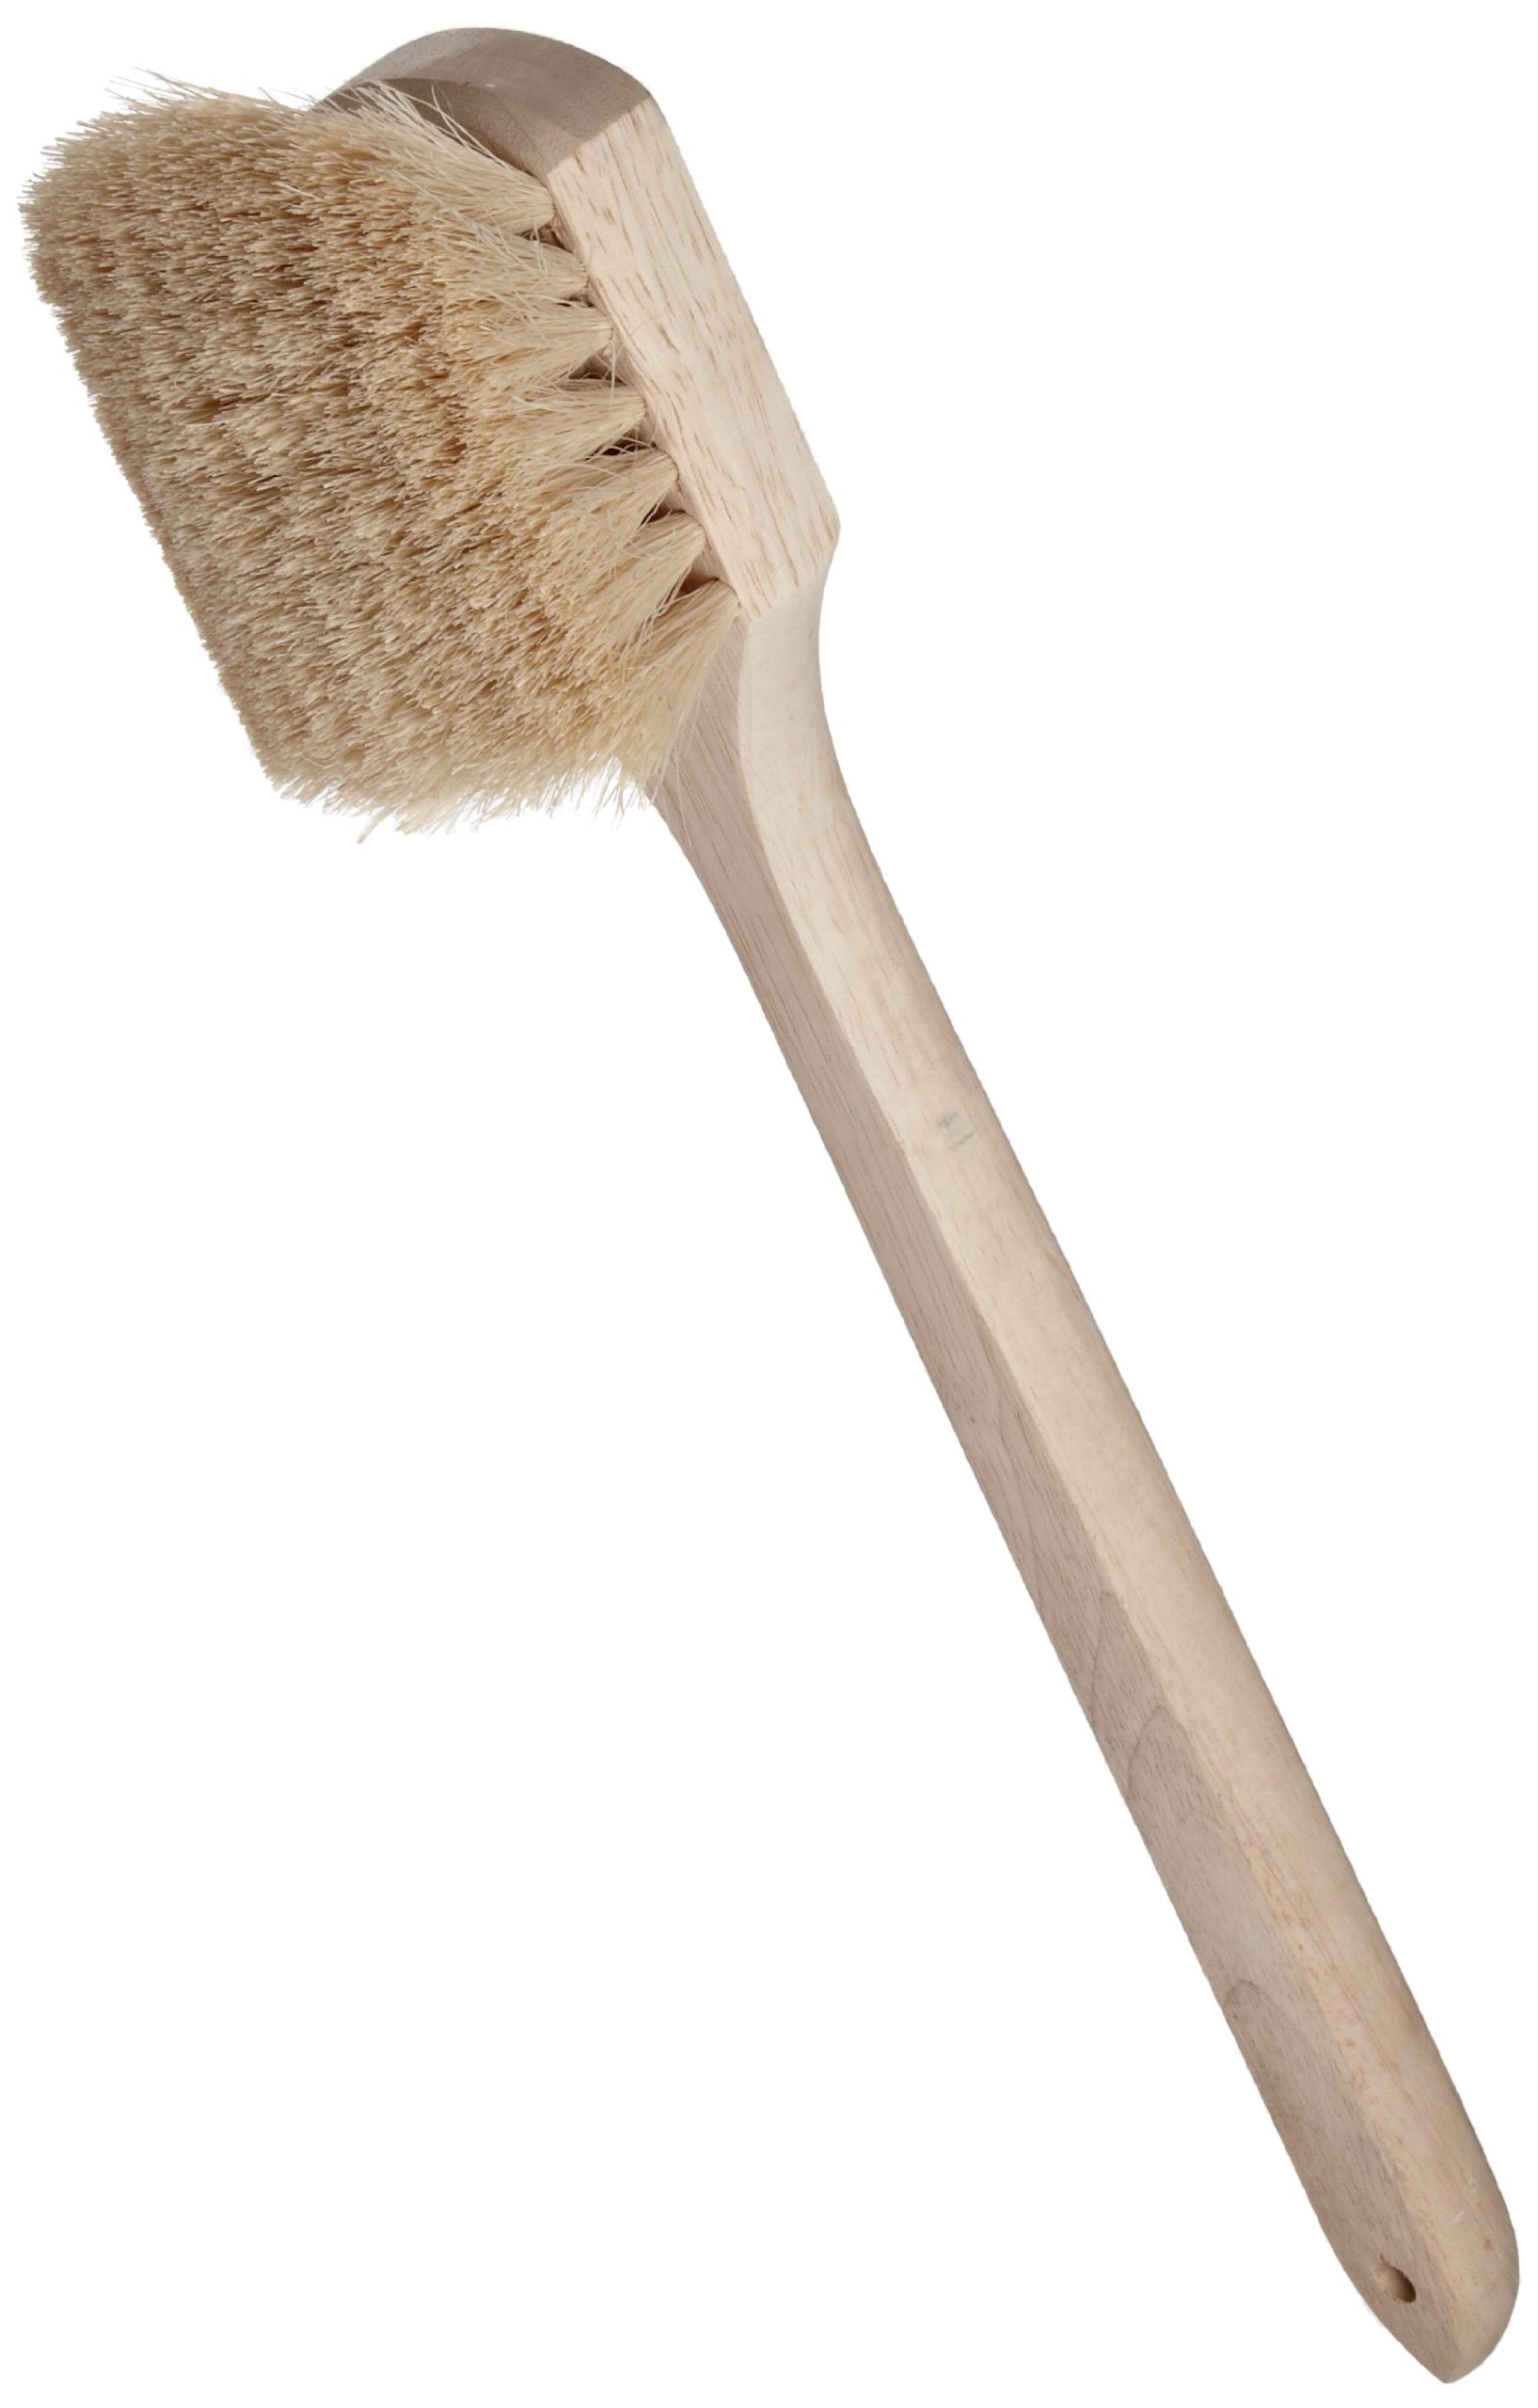 Weiler 44017 Tampico Fiber Utility Scrub Brush with Long Wood Handle, 2-1/2'' Head Width, 20'' Overall Length